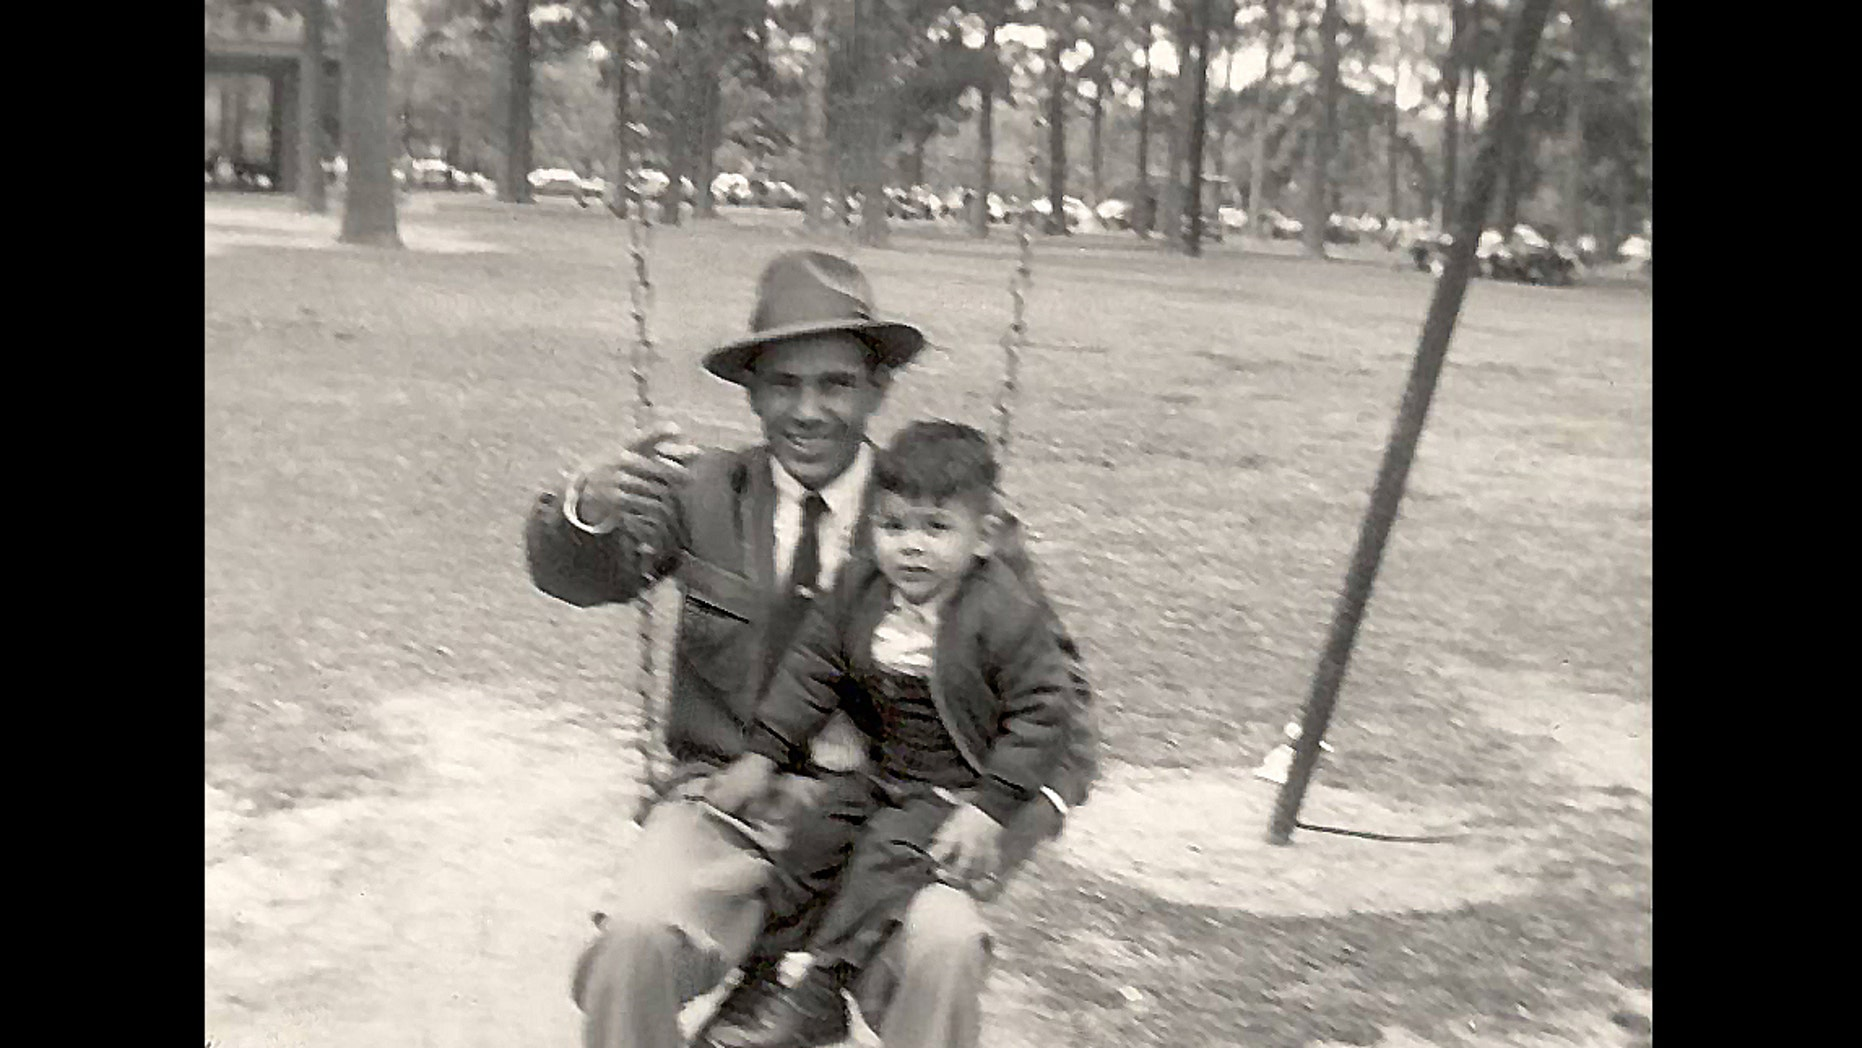 Alberto Gonzales, former U.S. Attorney General under the George W. Bush administration, pictured as a child with his father, Pablo.